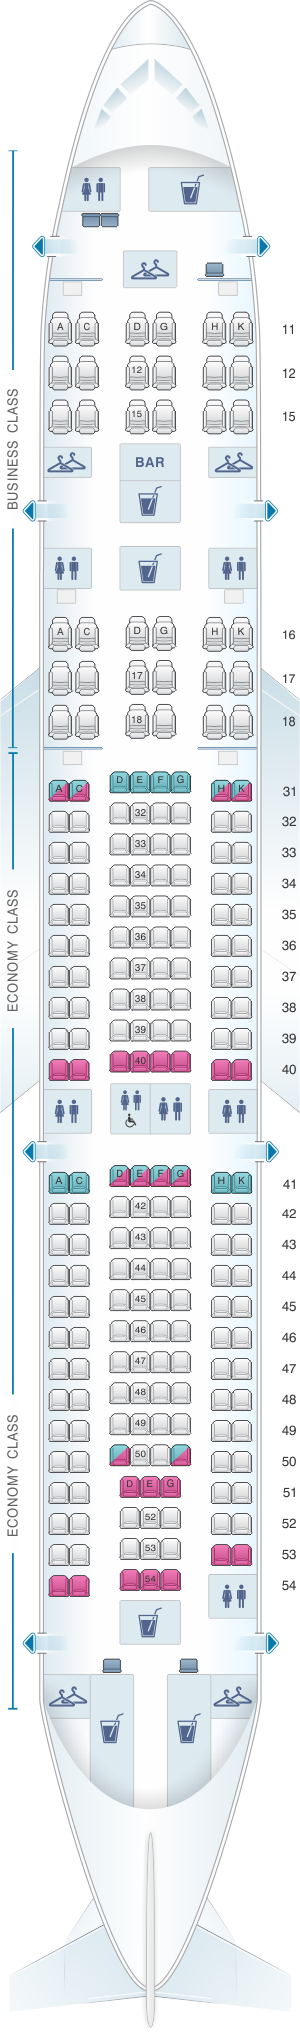 Seat Map Hainan Airlines Airbus A330 200 Seatmaestro